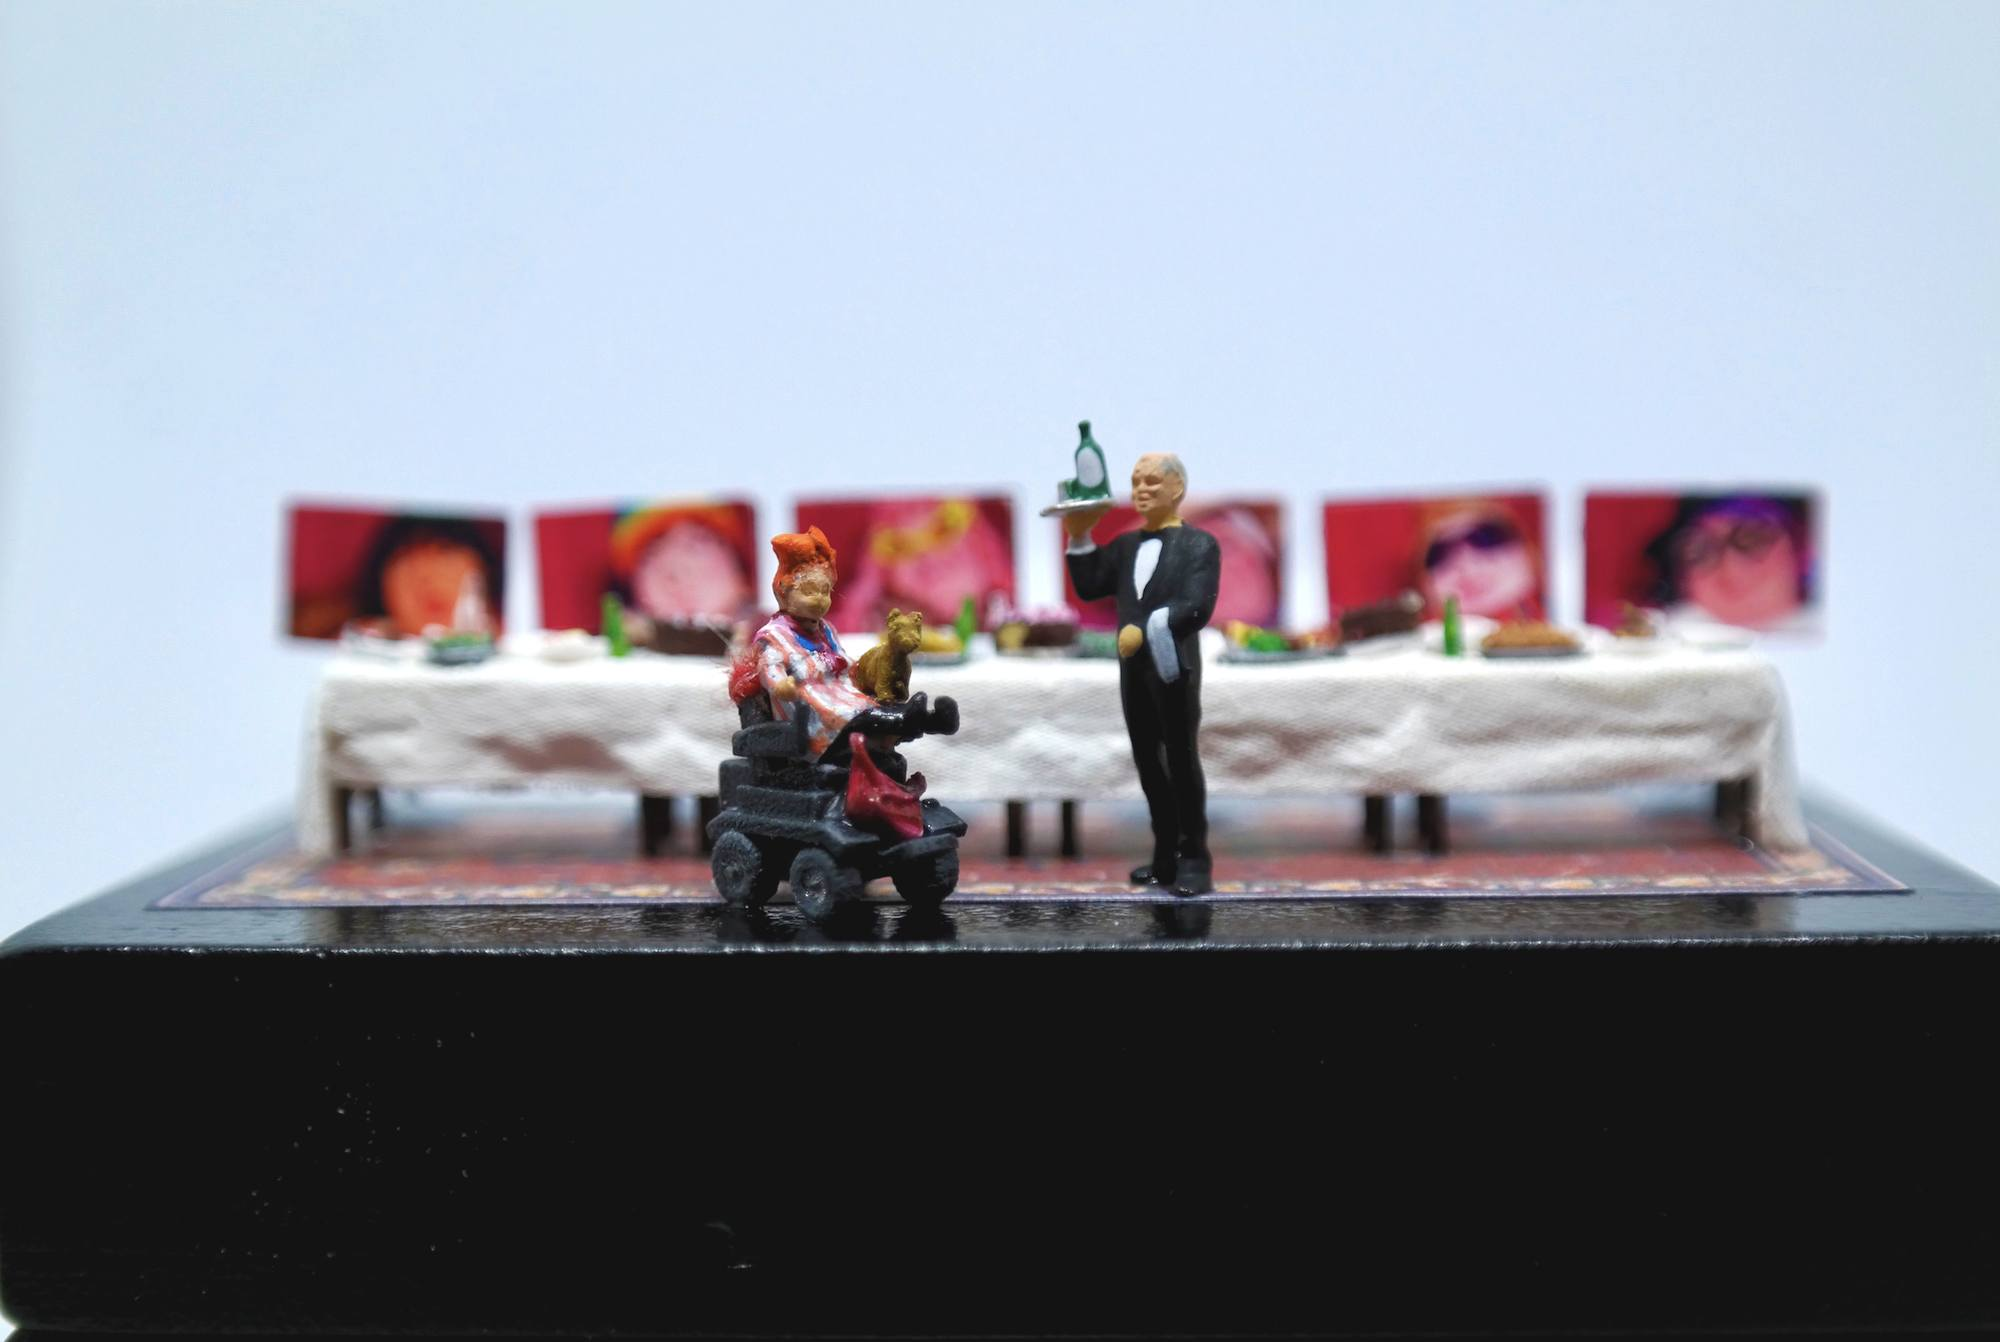 A miniature model of Katherine Araniello's work 'The Dinner Party Revisited'.